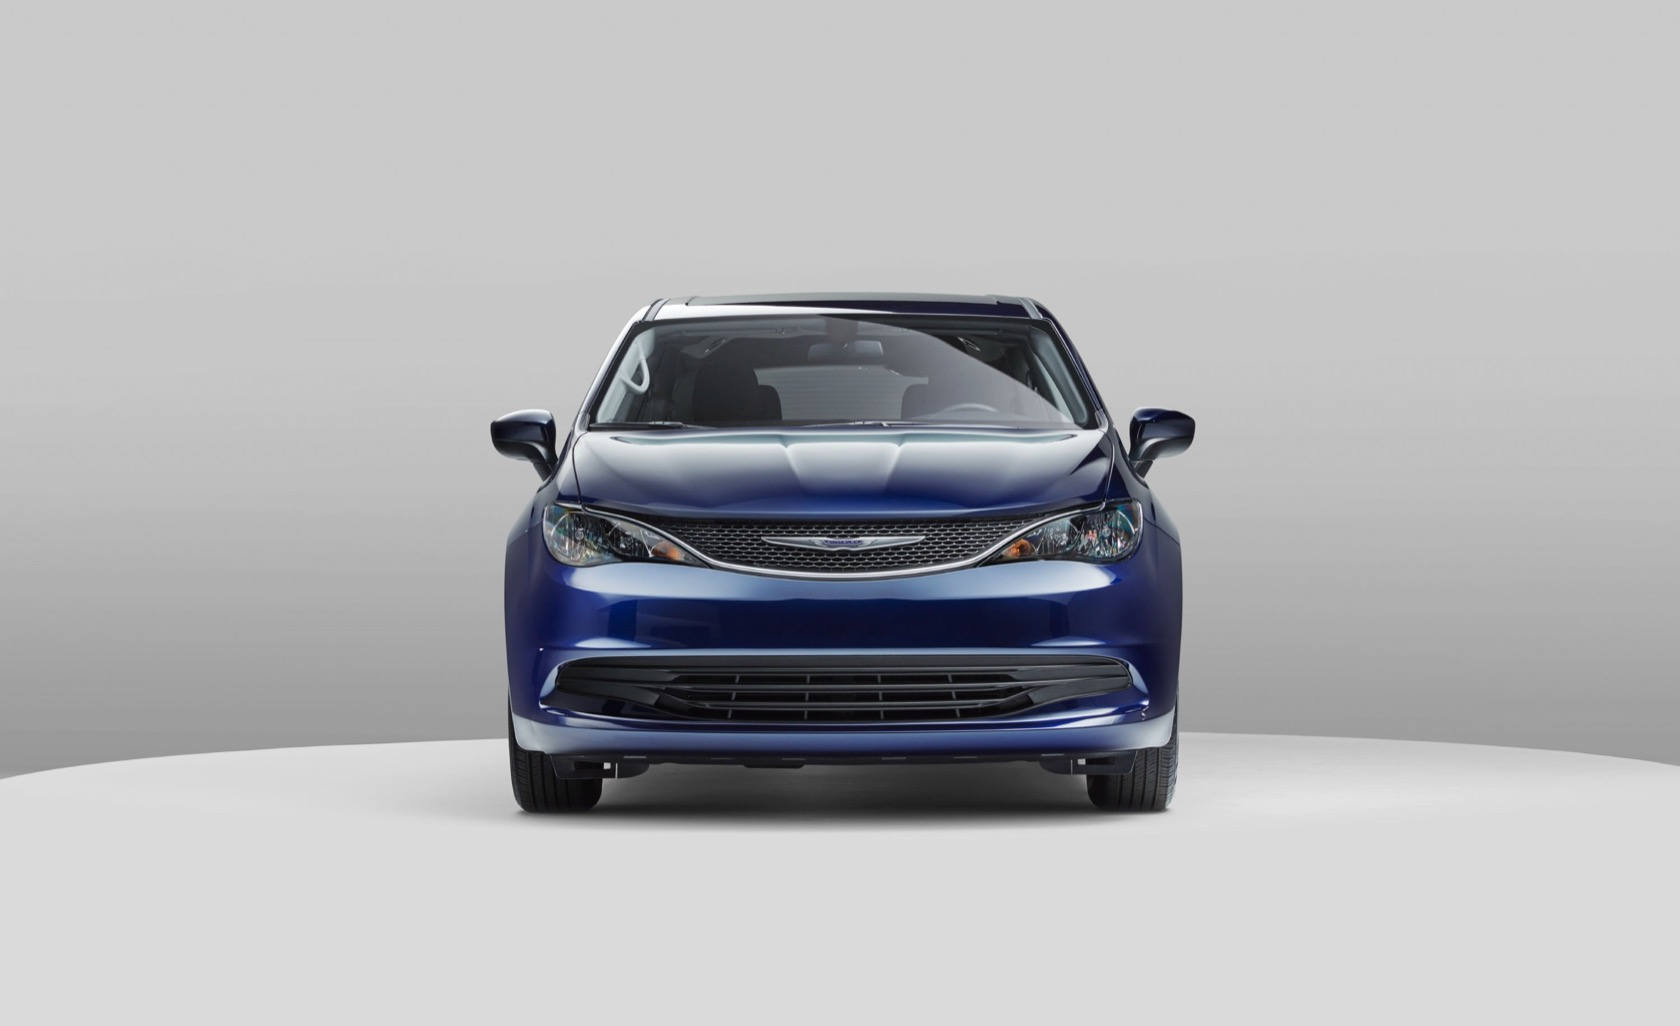 2020 Chrysler Voyager Is A Budget Minivan With Pacifica